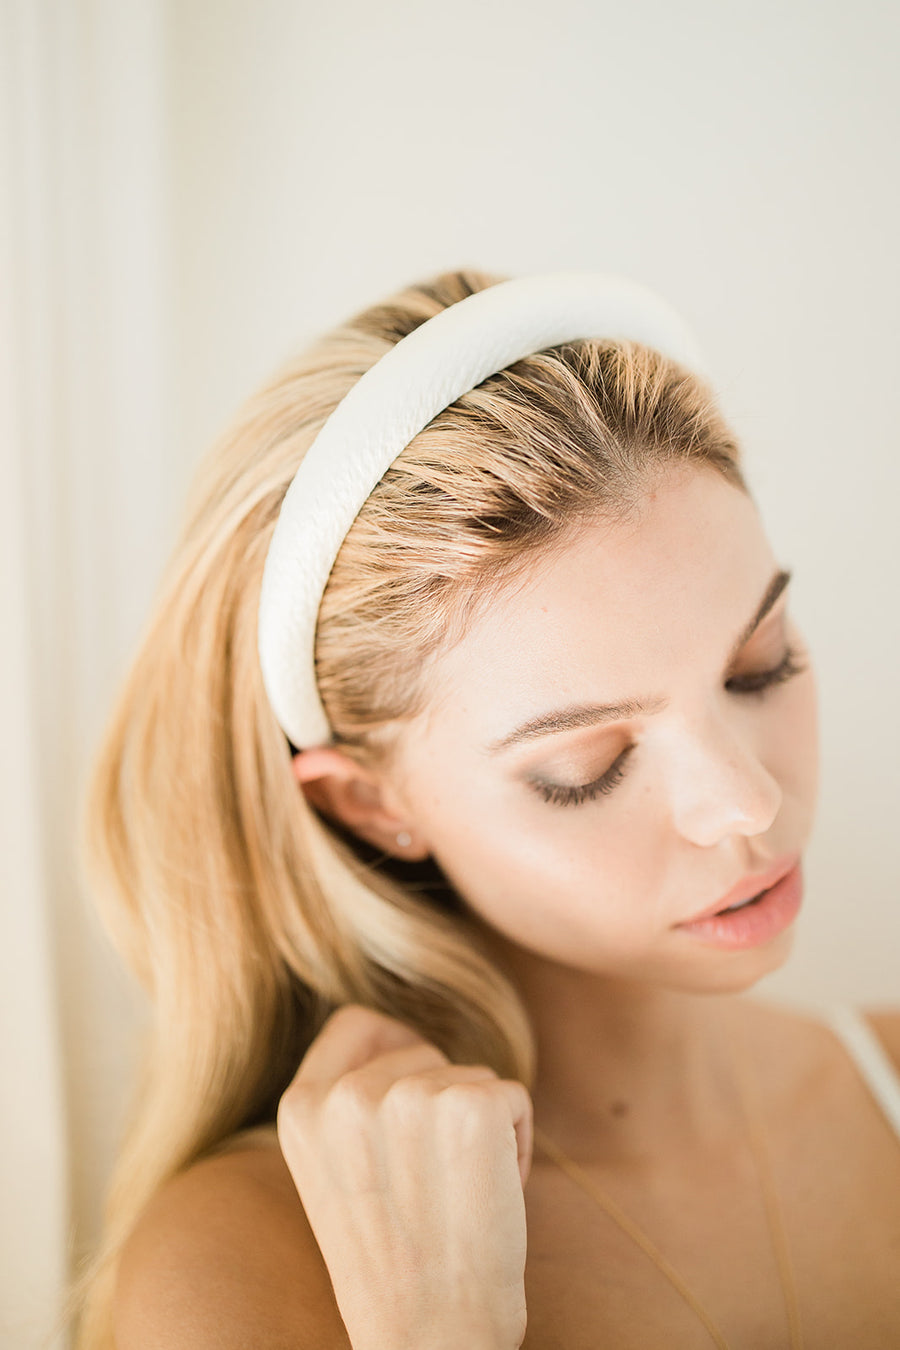 Tori Hammered Silk Headband - The Beach Bride by Chic Parisien, a destination for beach weddings, bachelorettes and honeymoons